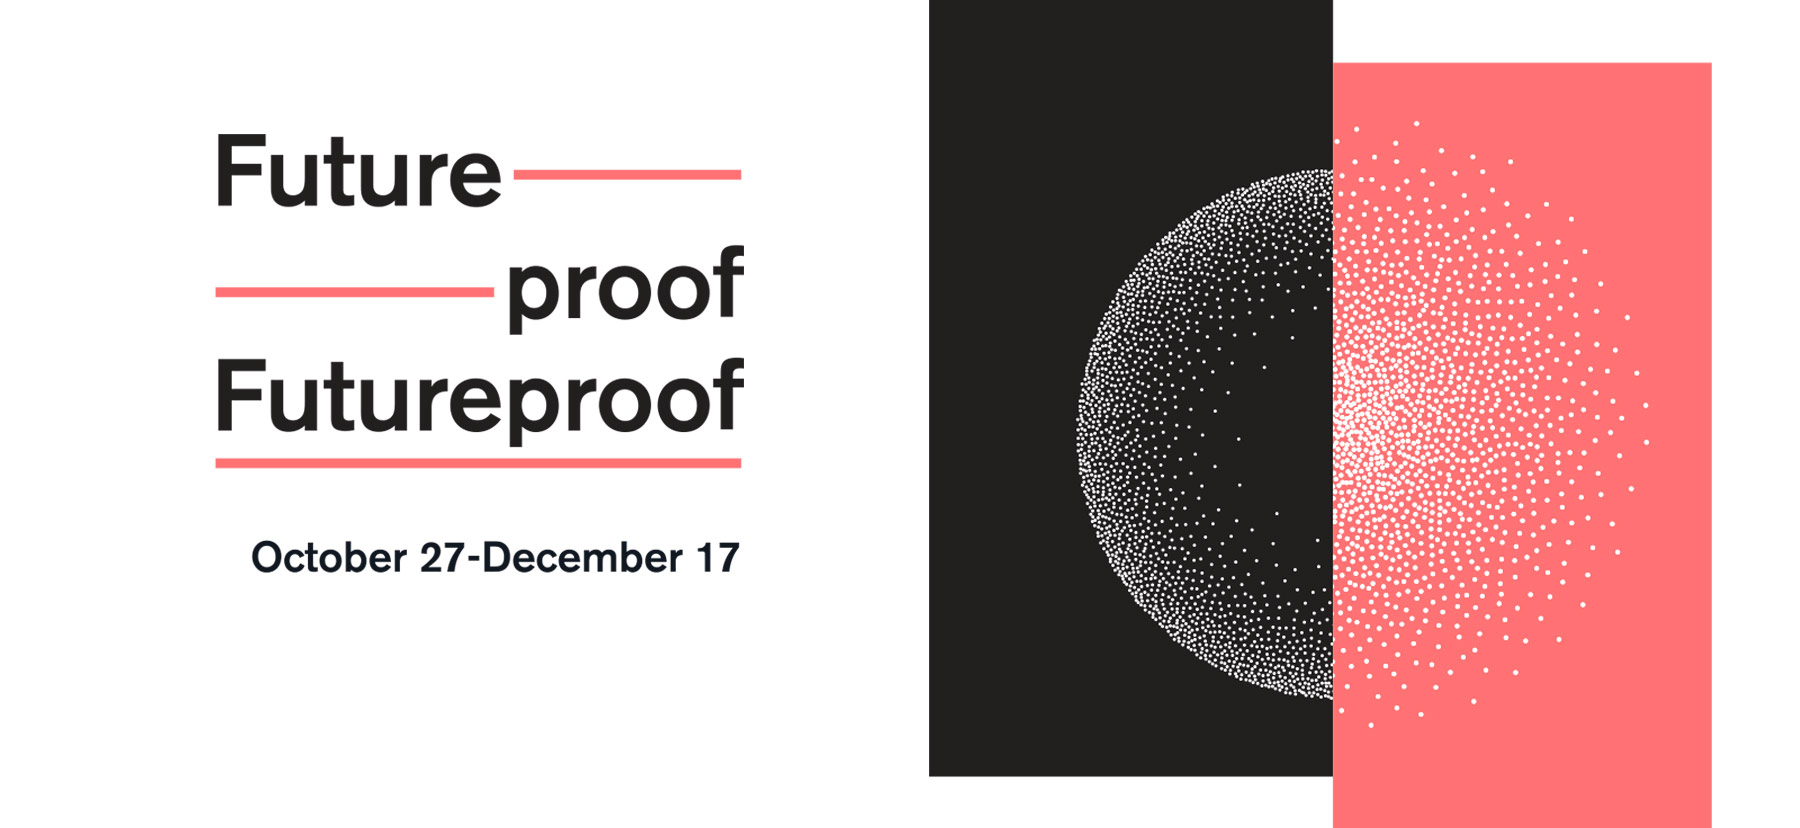 Futureproof Exhibit logo and graphic